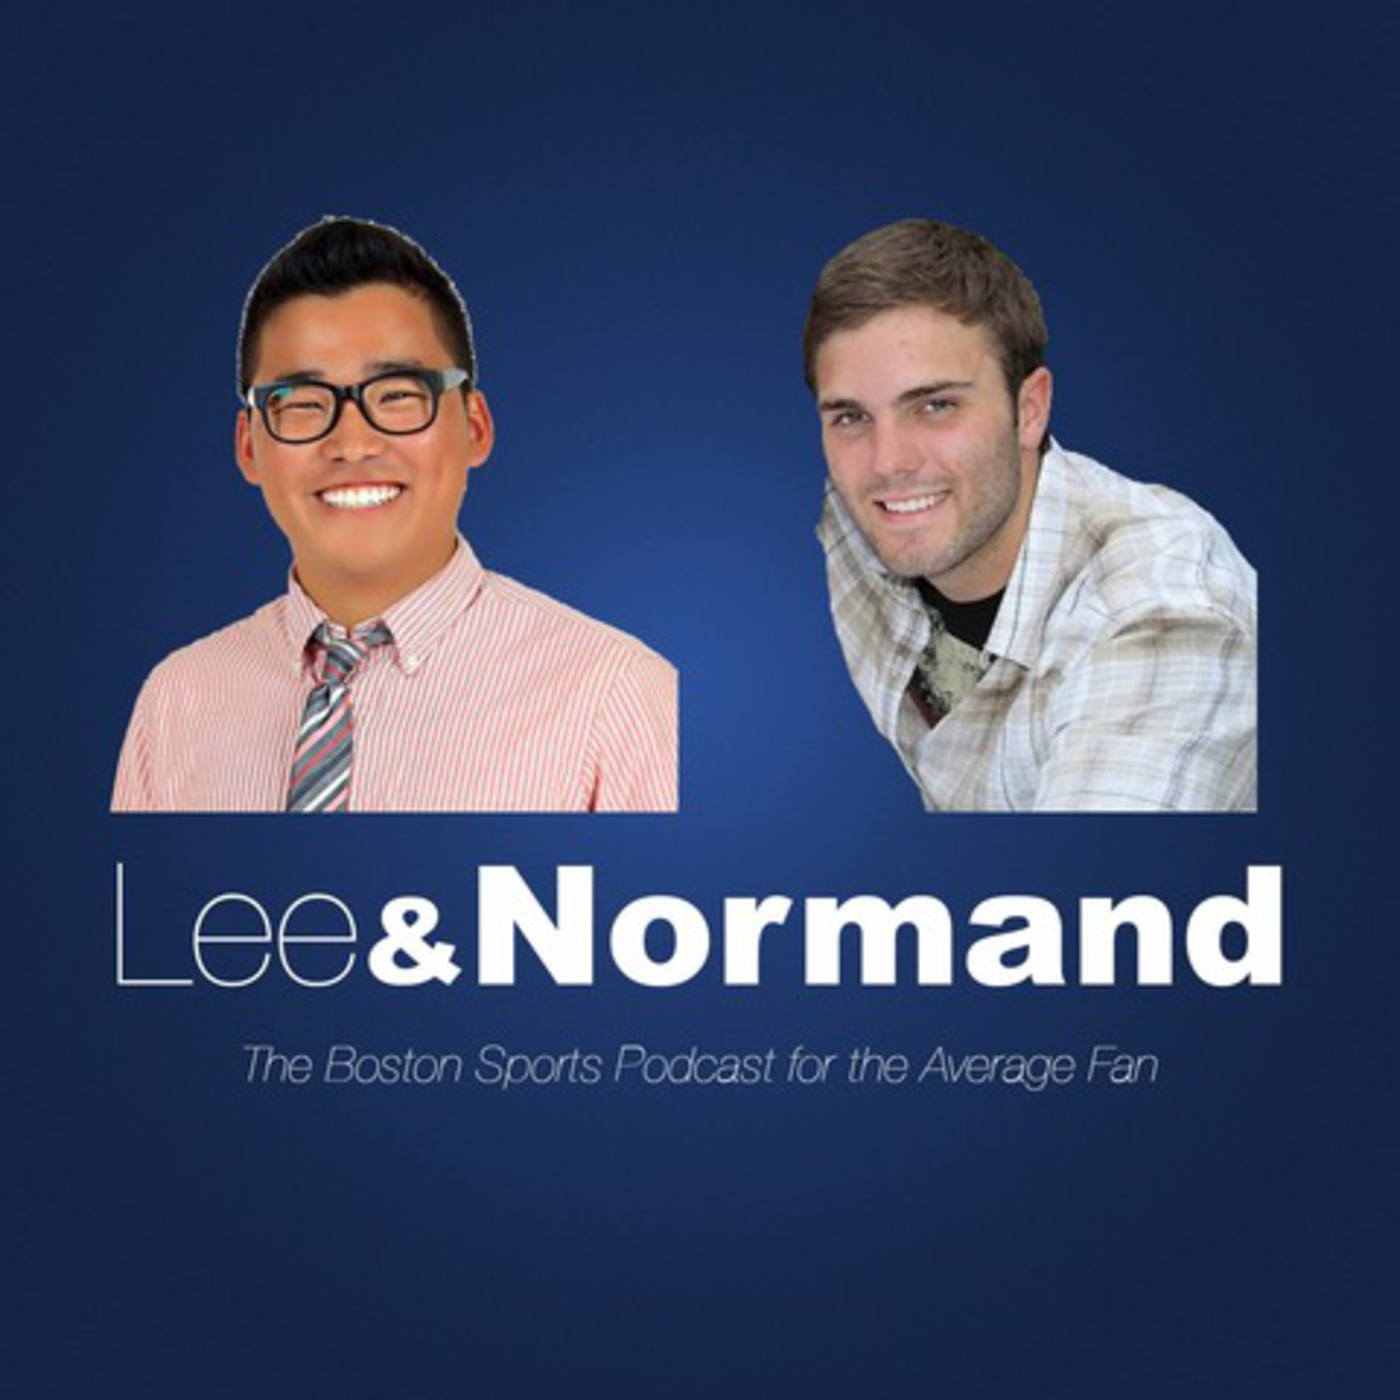 Lee & Normand